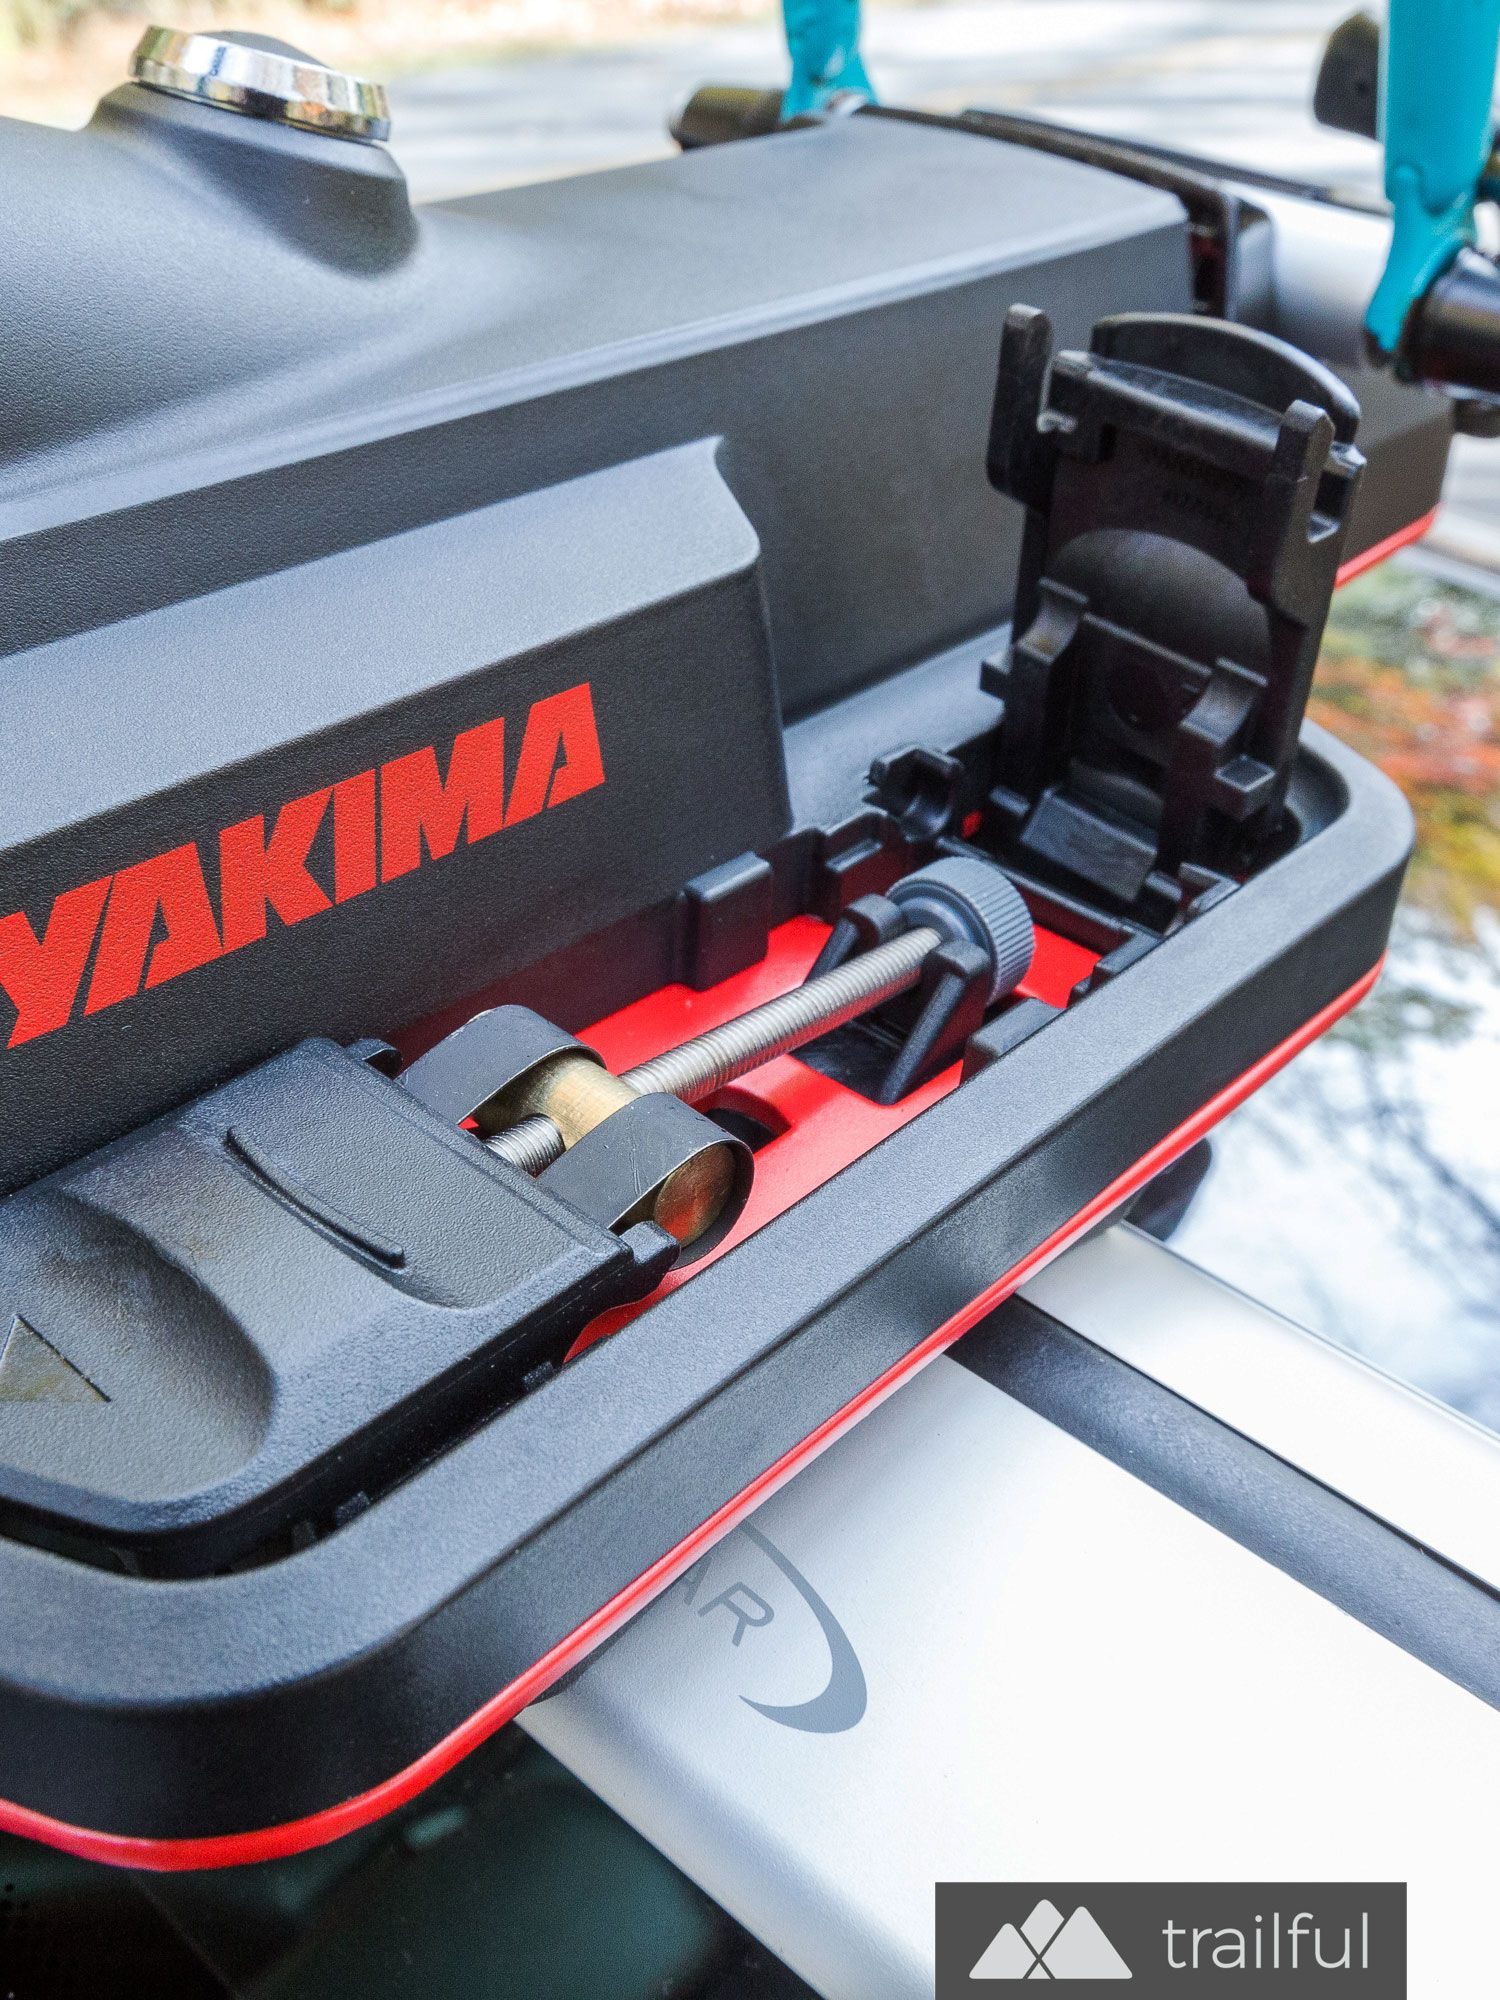 Yakima Highspeed Bike Rack Review Bike Rack Bike Outdoor Gear